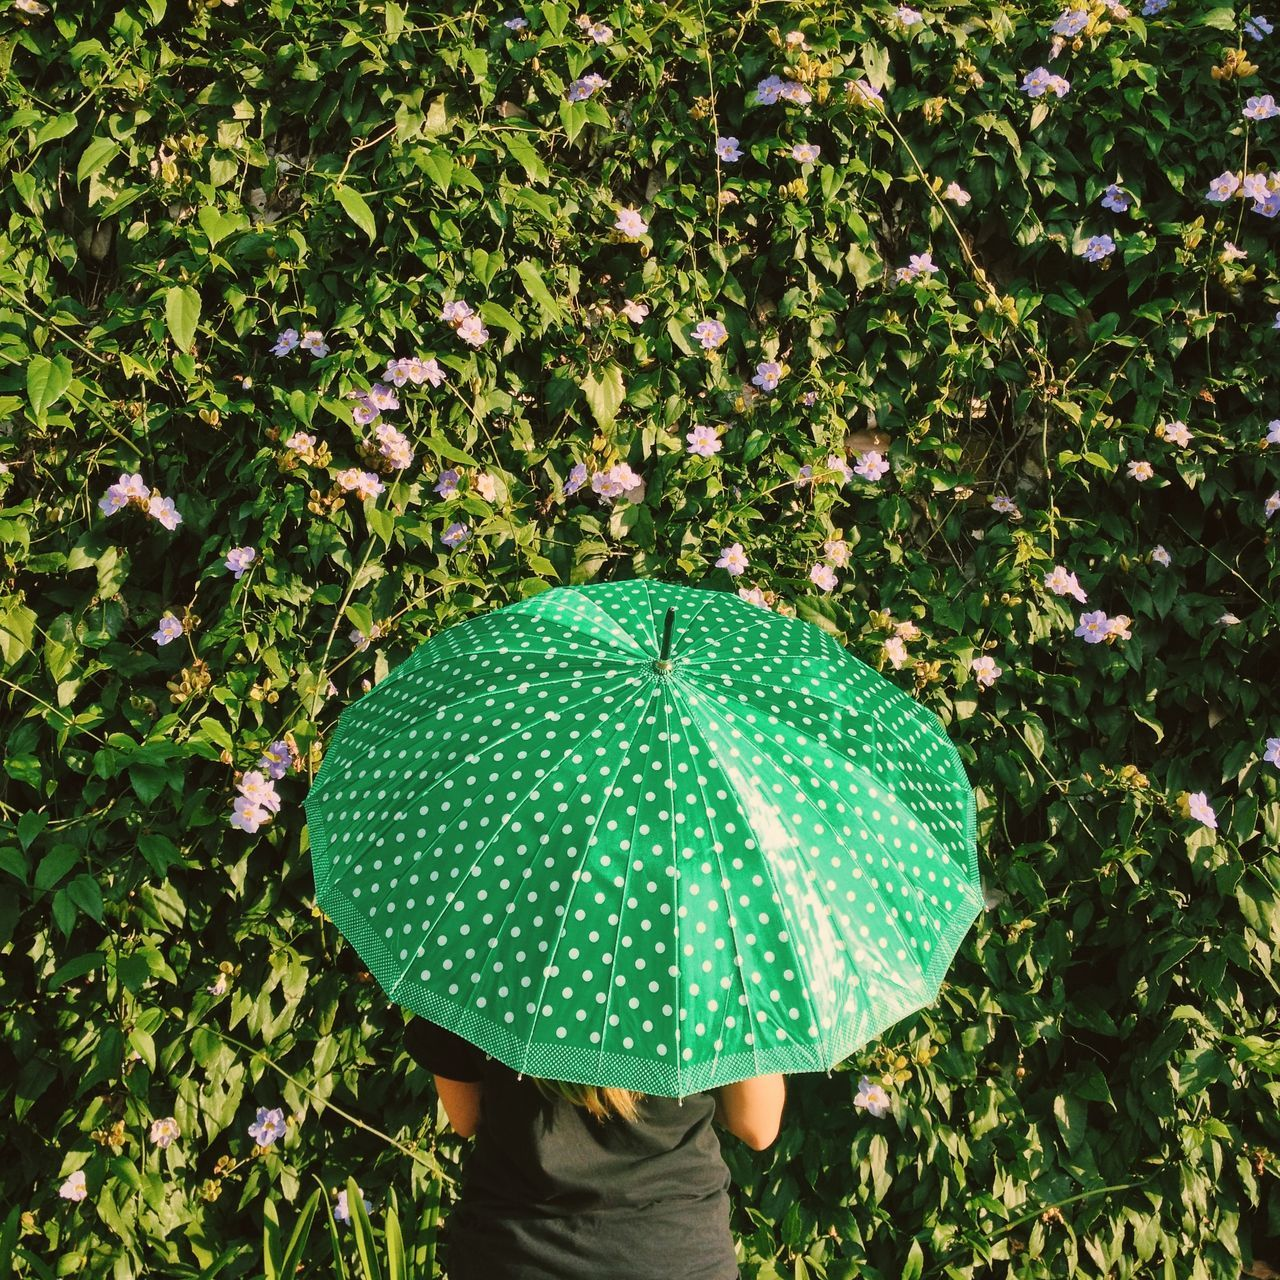 Green Umbrella Green Wall Adapted To The City Adult Adults Only Beauty In Nature Creative Day Green Color Growth Low Section Nature One Person One Woman Only Outdoors People Protection Real People Standing Tranquility Tree Umbrella